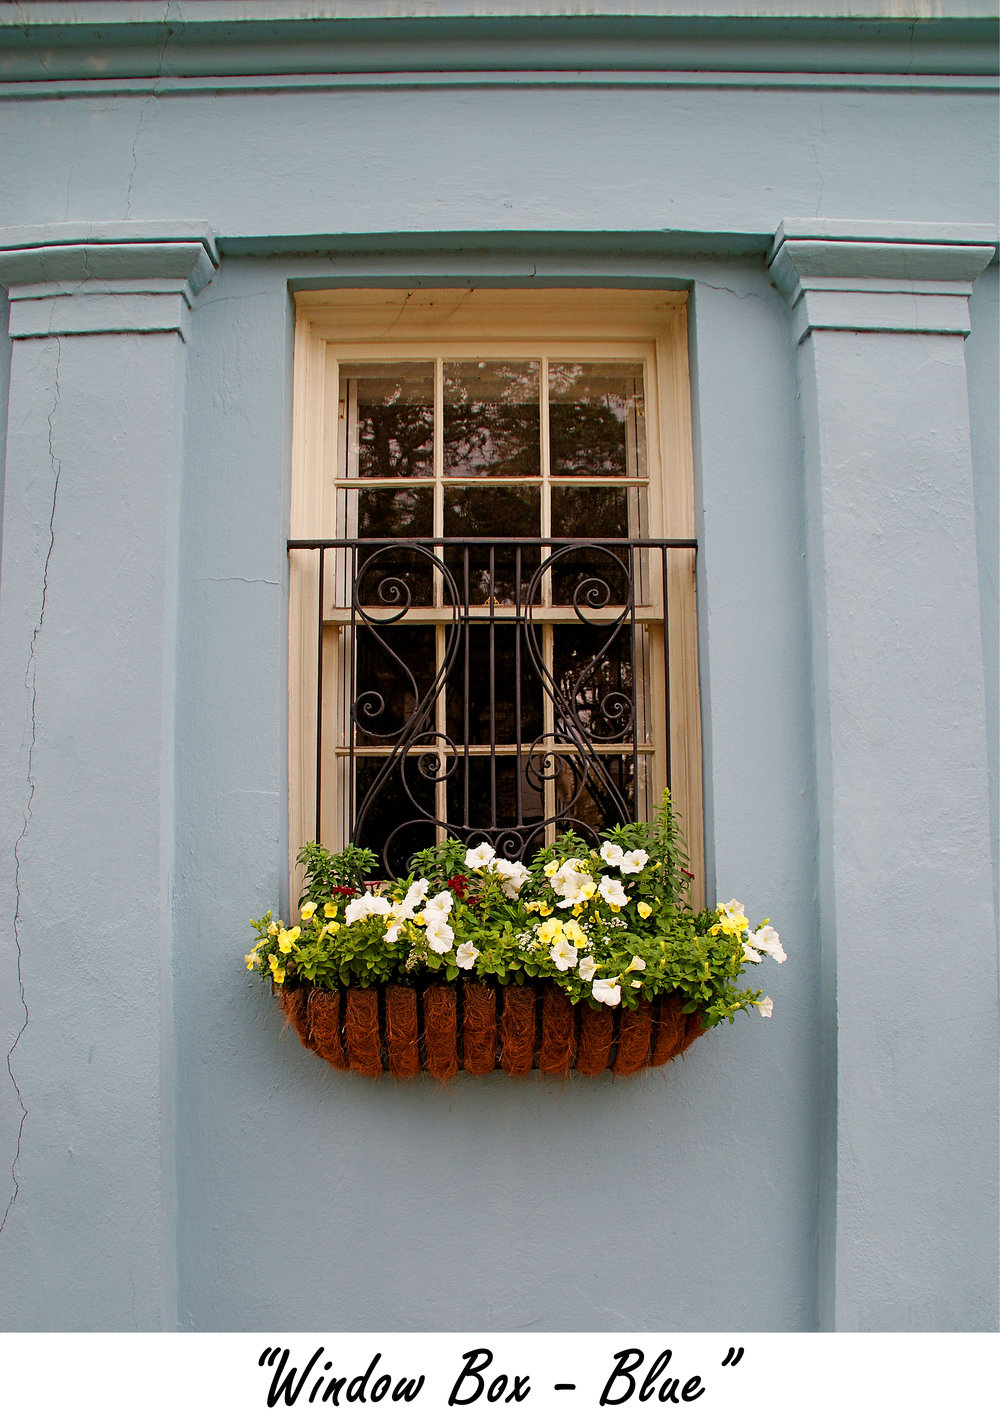 windowbox Blue.jpg